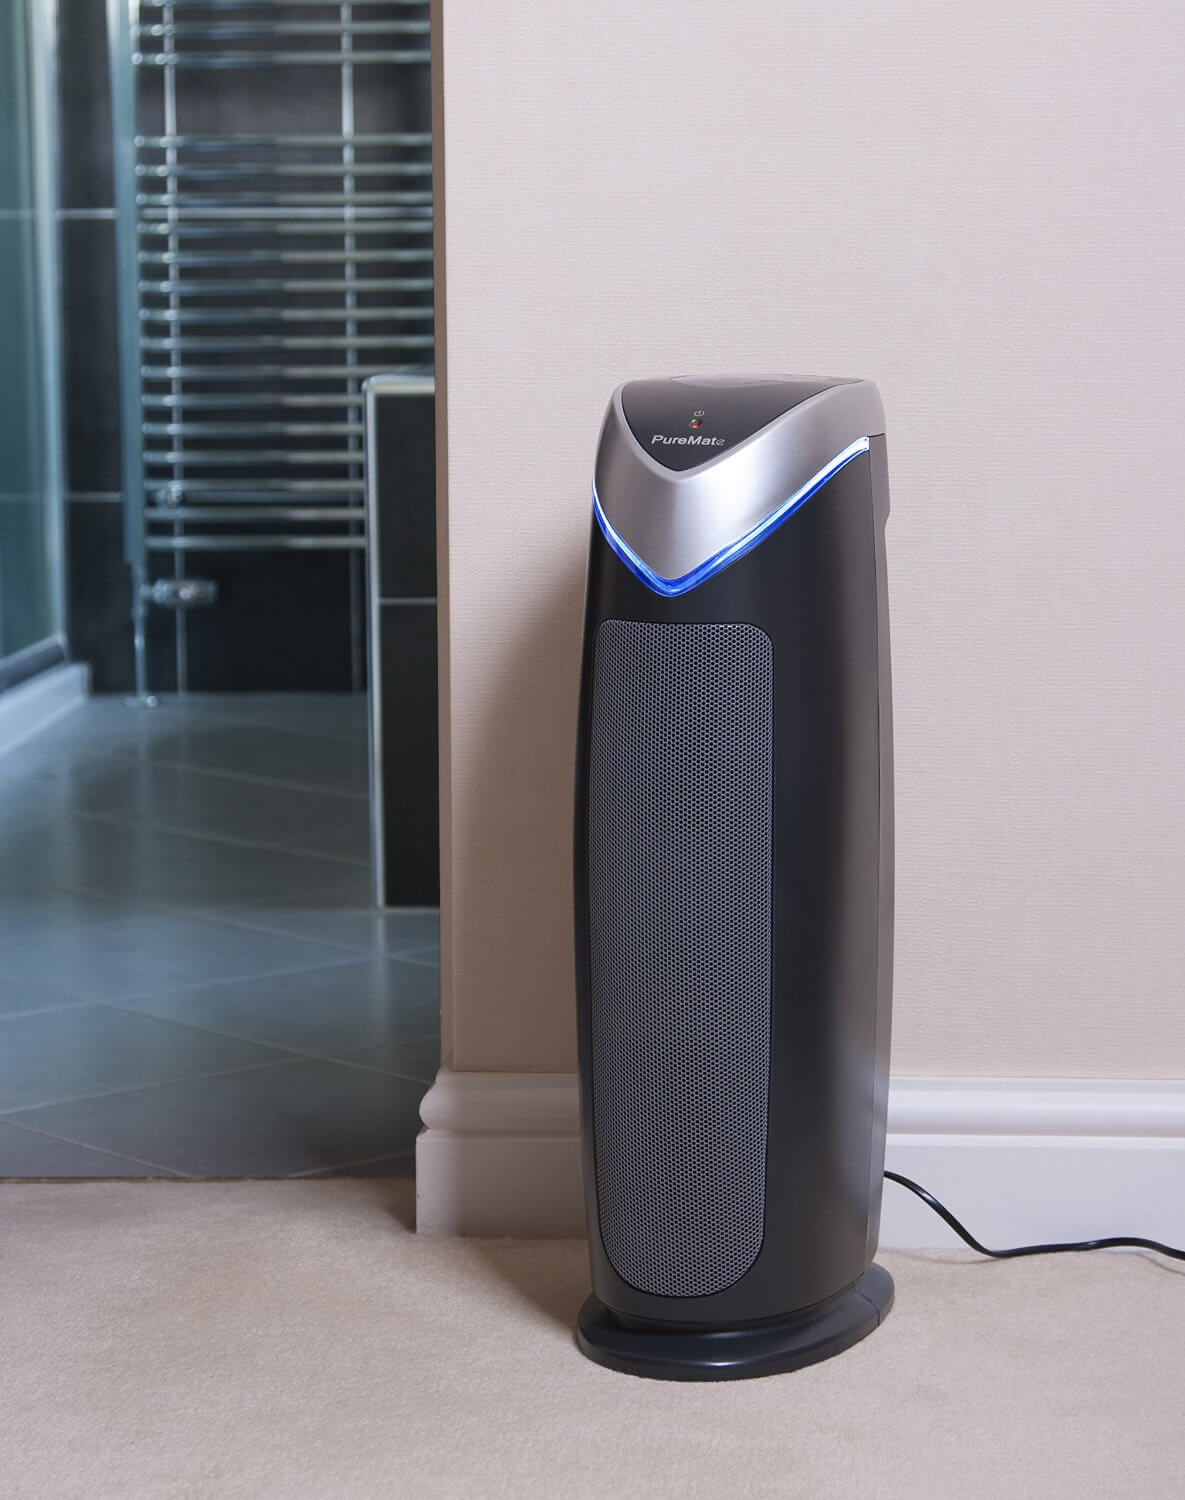 Benefits of an air purifier in your house or bedroom for Bedroom air purifier